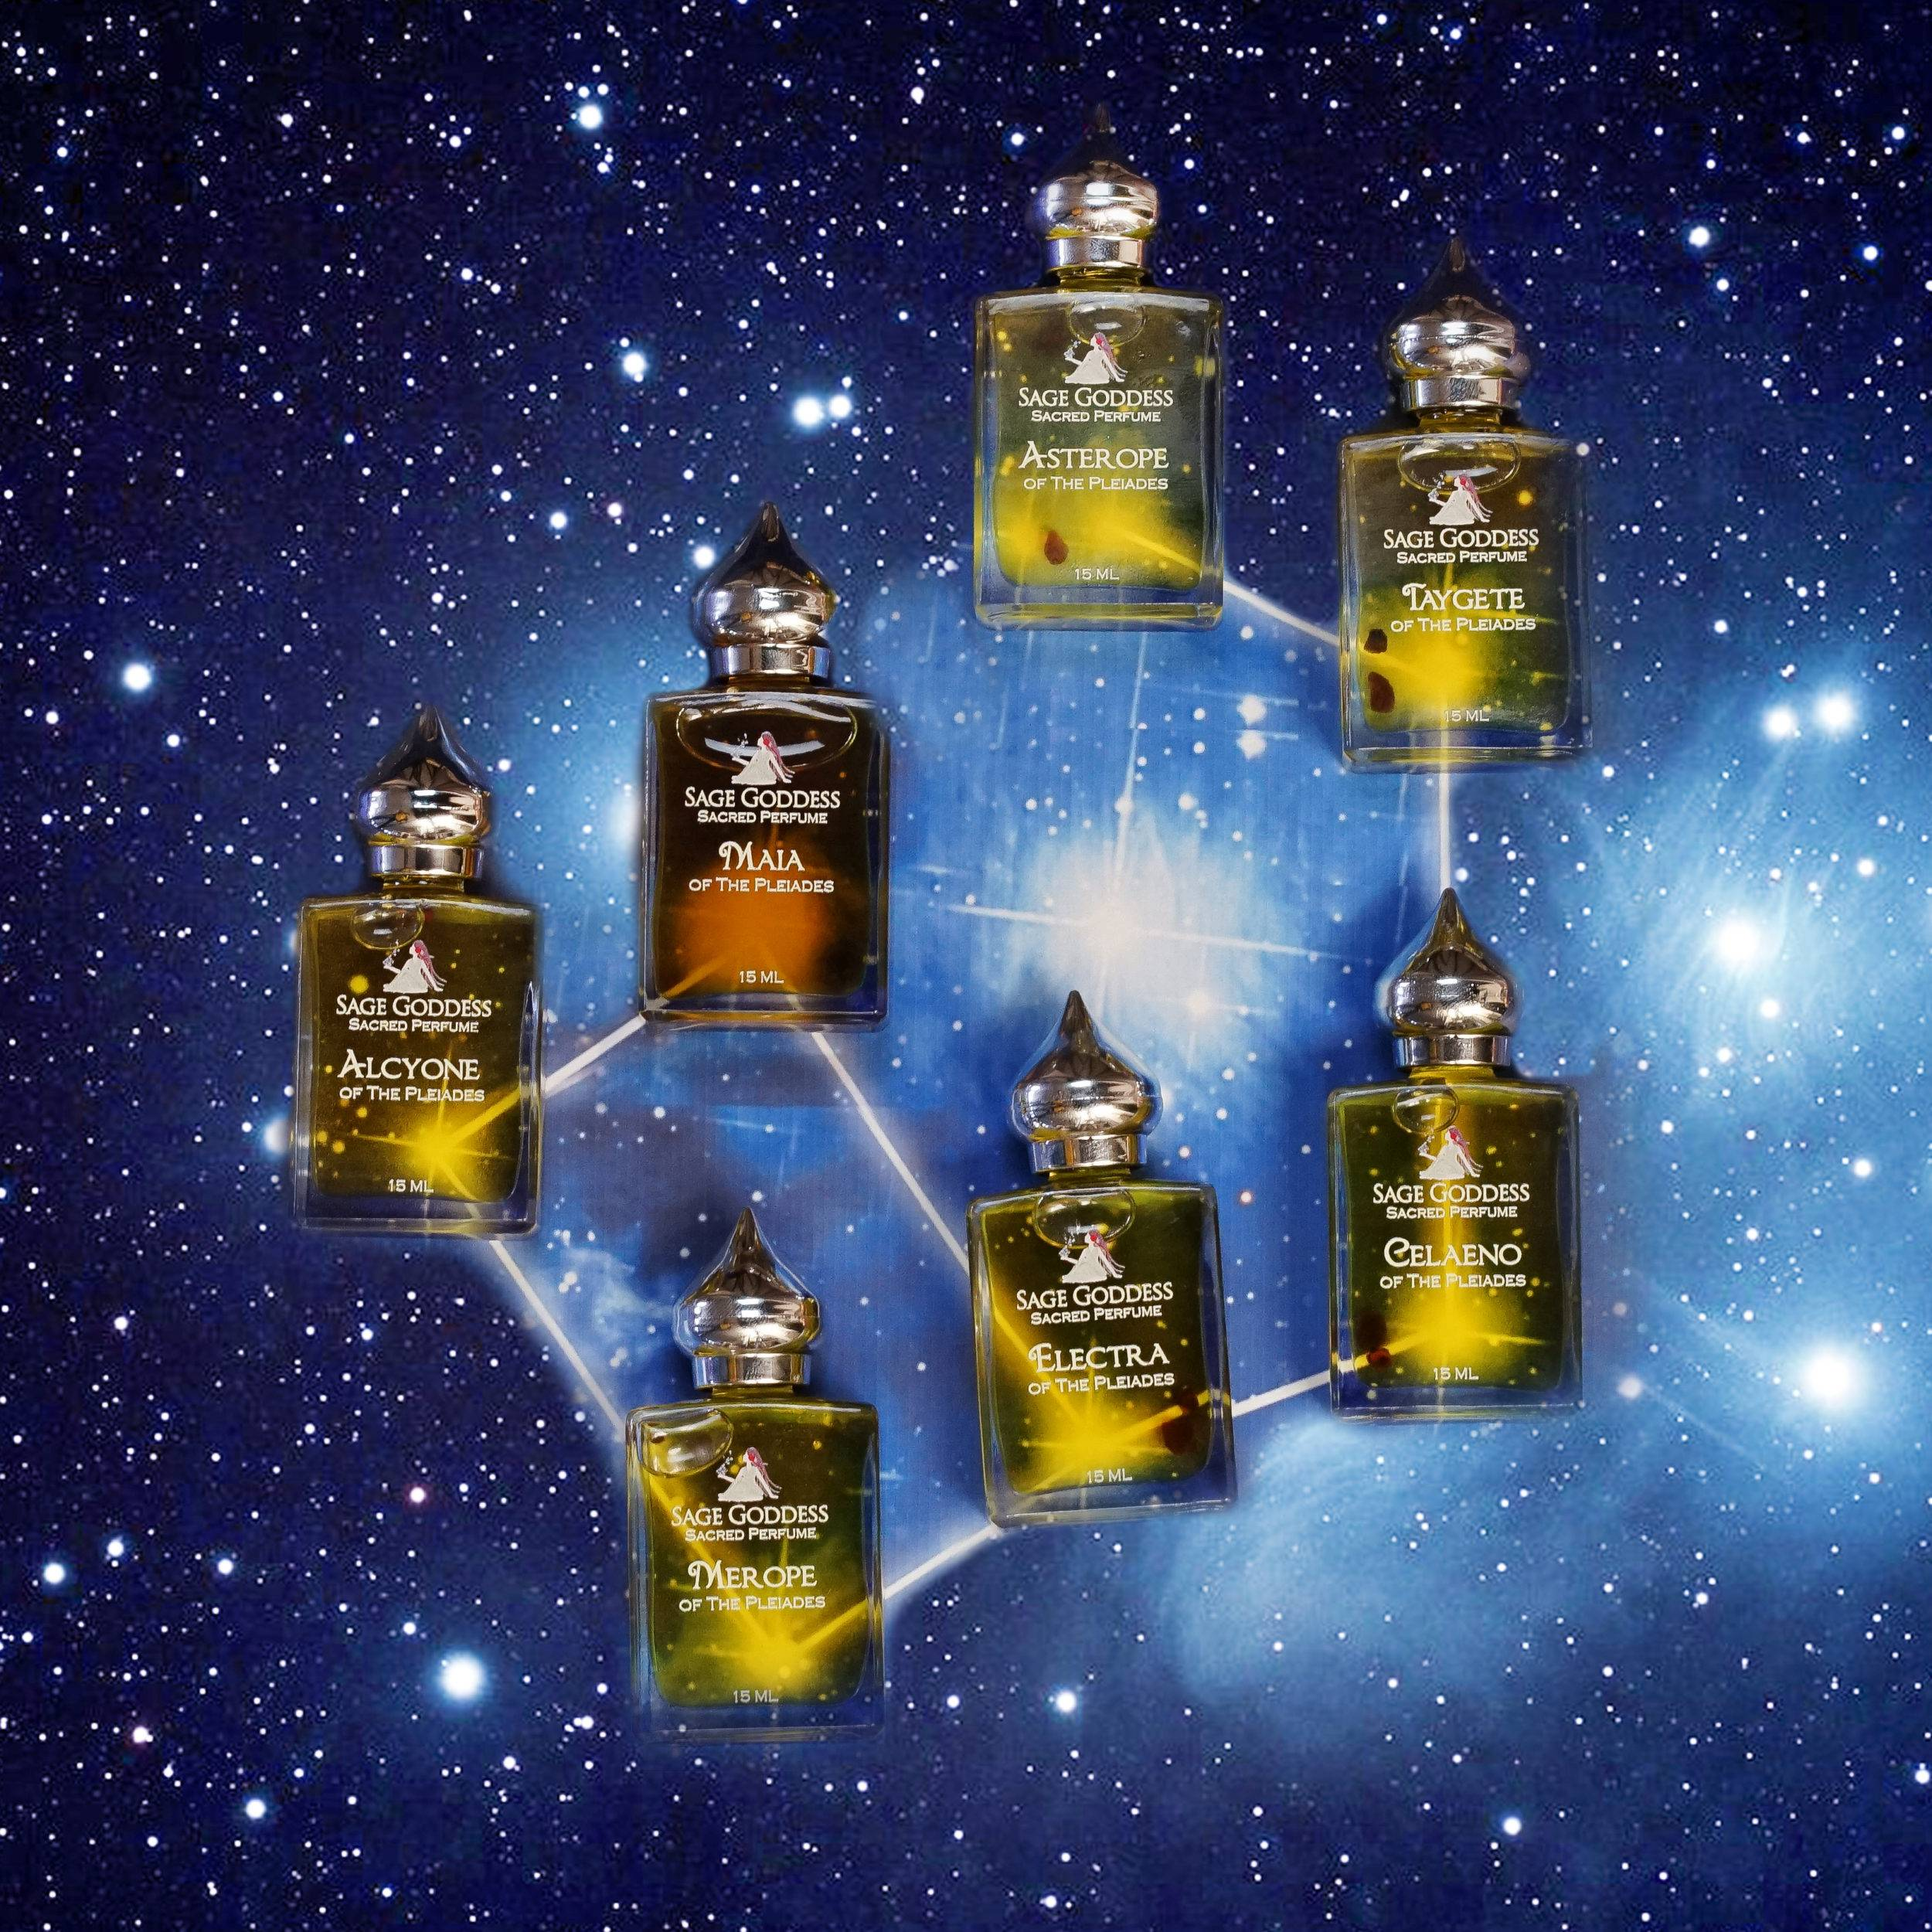 Merope Pleiadian Perfume for remaining true to your heart